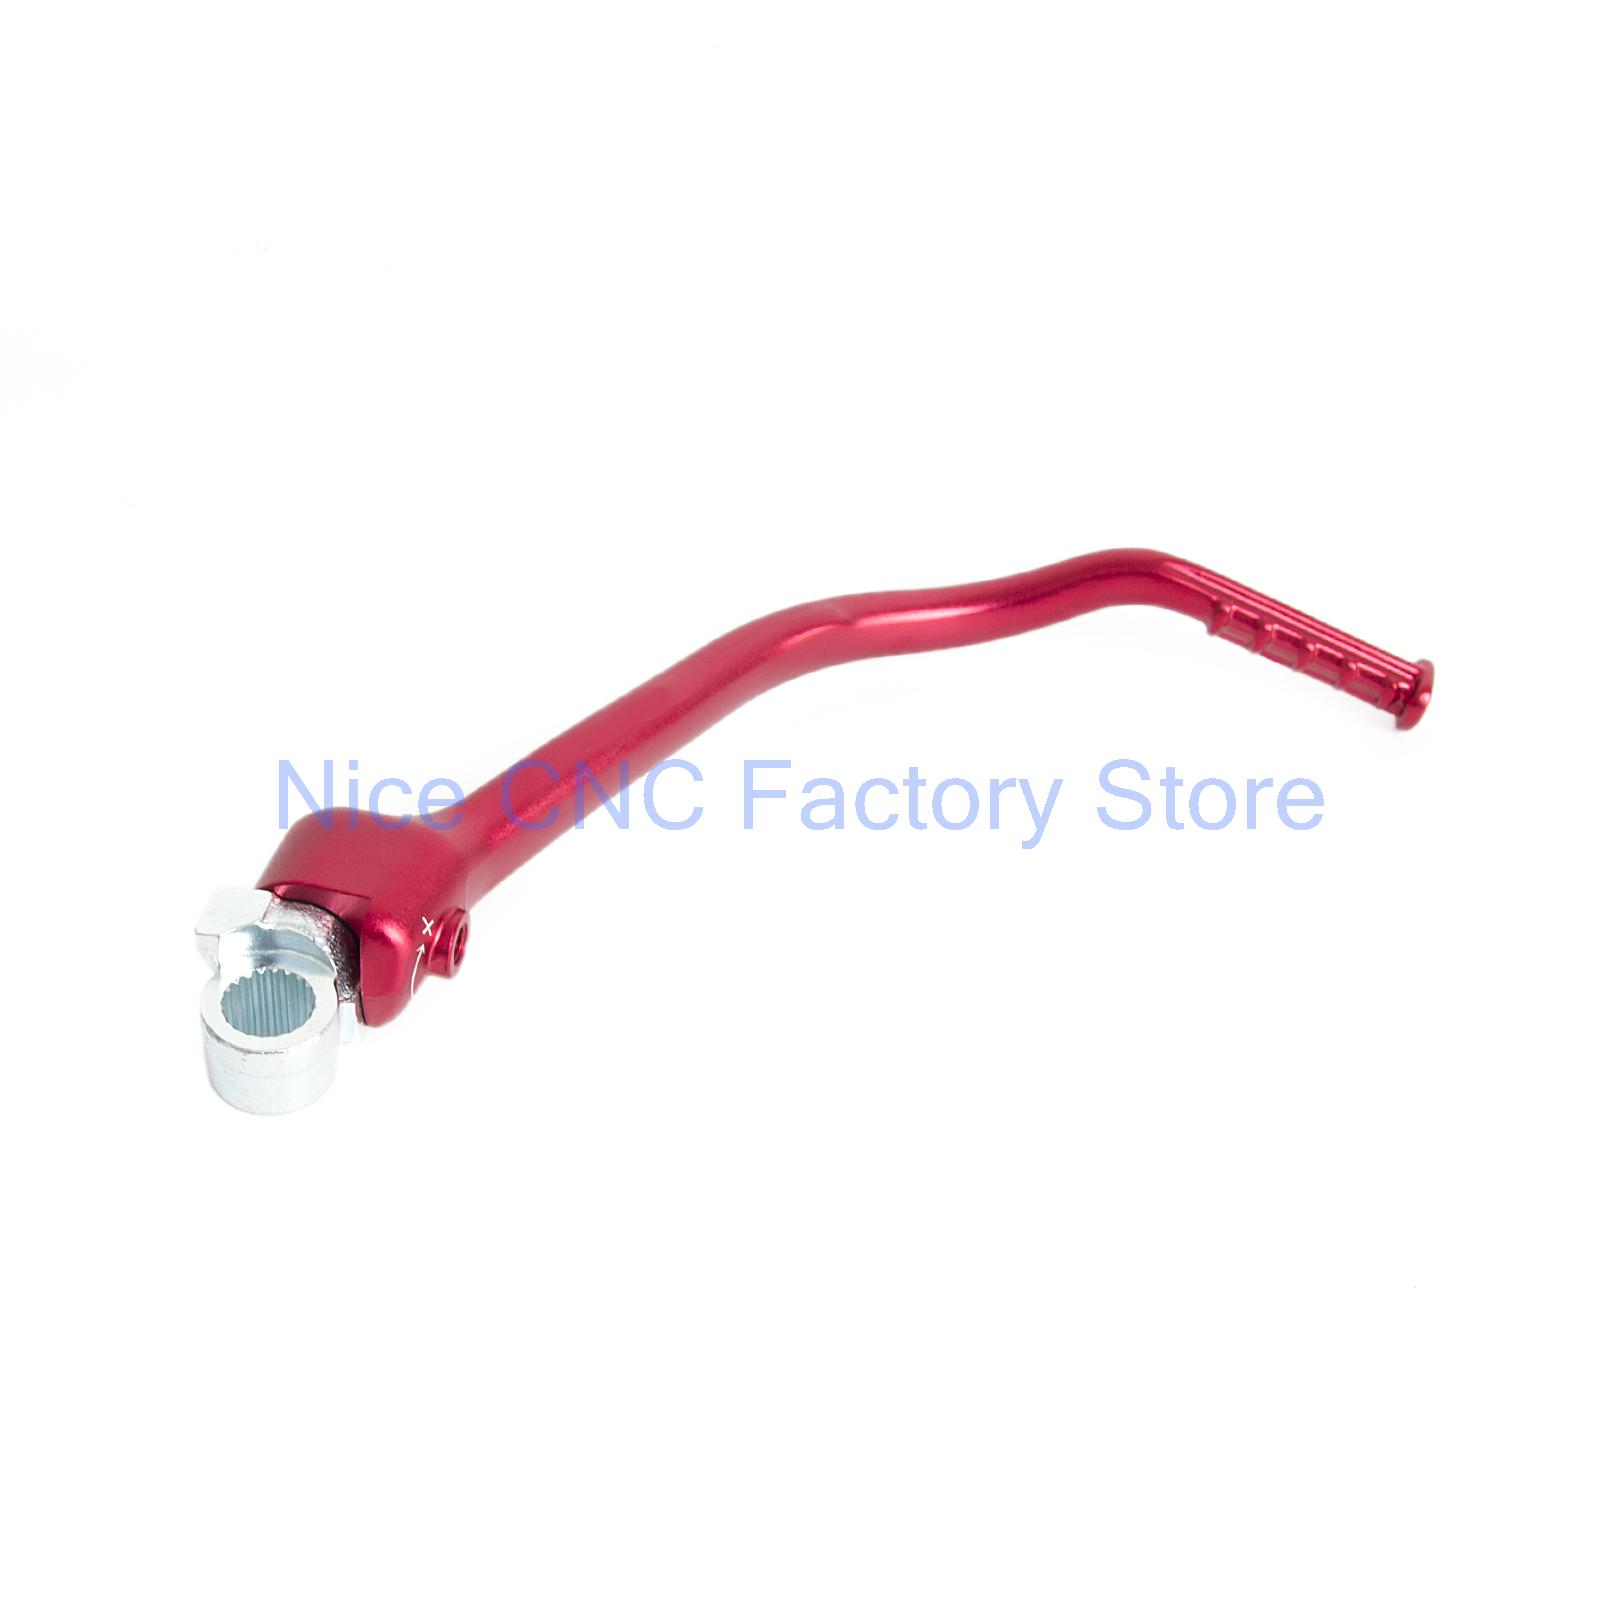 ФОТО Anodized Red Forged Kick Start Lever for Honda CRF250R 2012 - 2016 2013 2014 2015 CRF250 R CRF 250R NEW